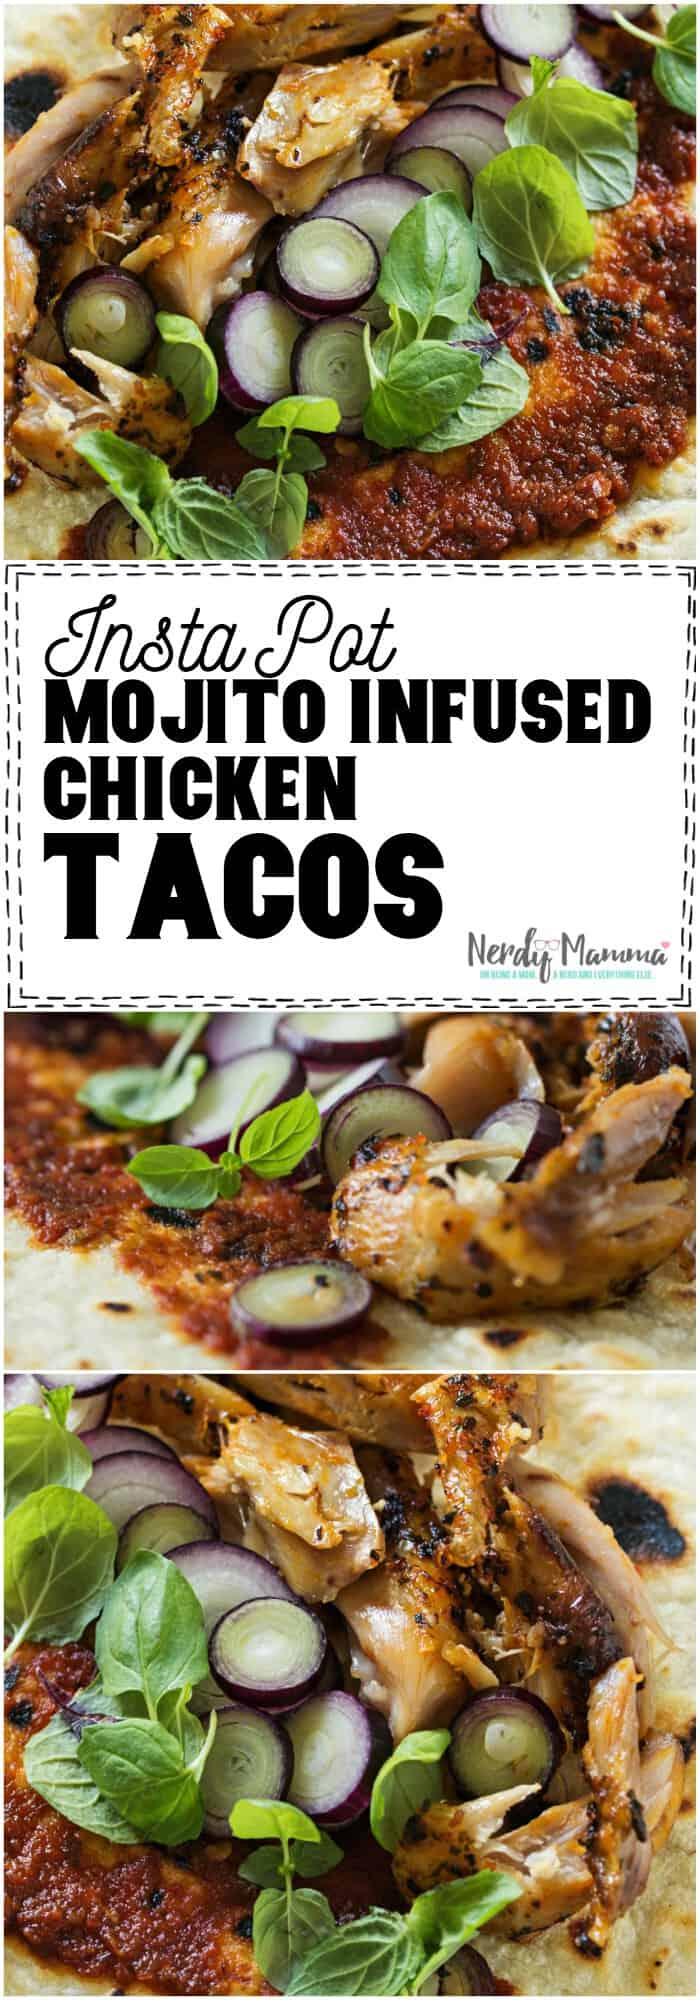 So hot. Chicken Tacos made in the Insta Pot with Mojito-flavoring. These Instant Pot Mojito Infused Chicken Tacos are awesome. #recipe #instapot #pressurecooker #chicken #chickenunderpressure #tasty #yummy #taco